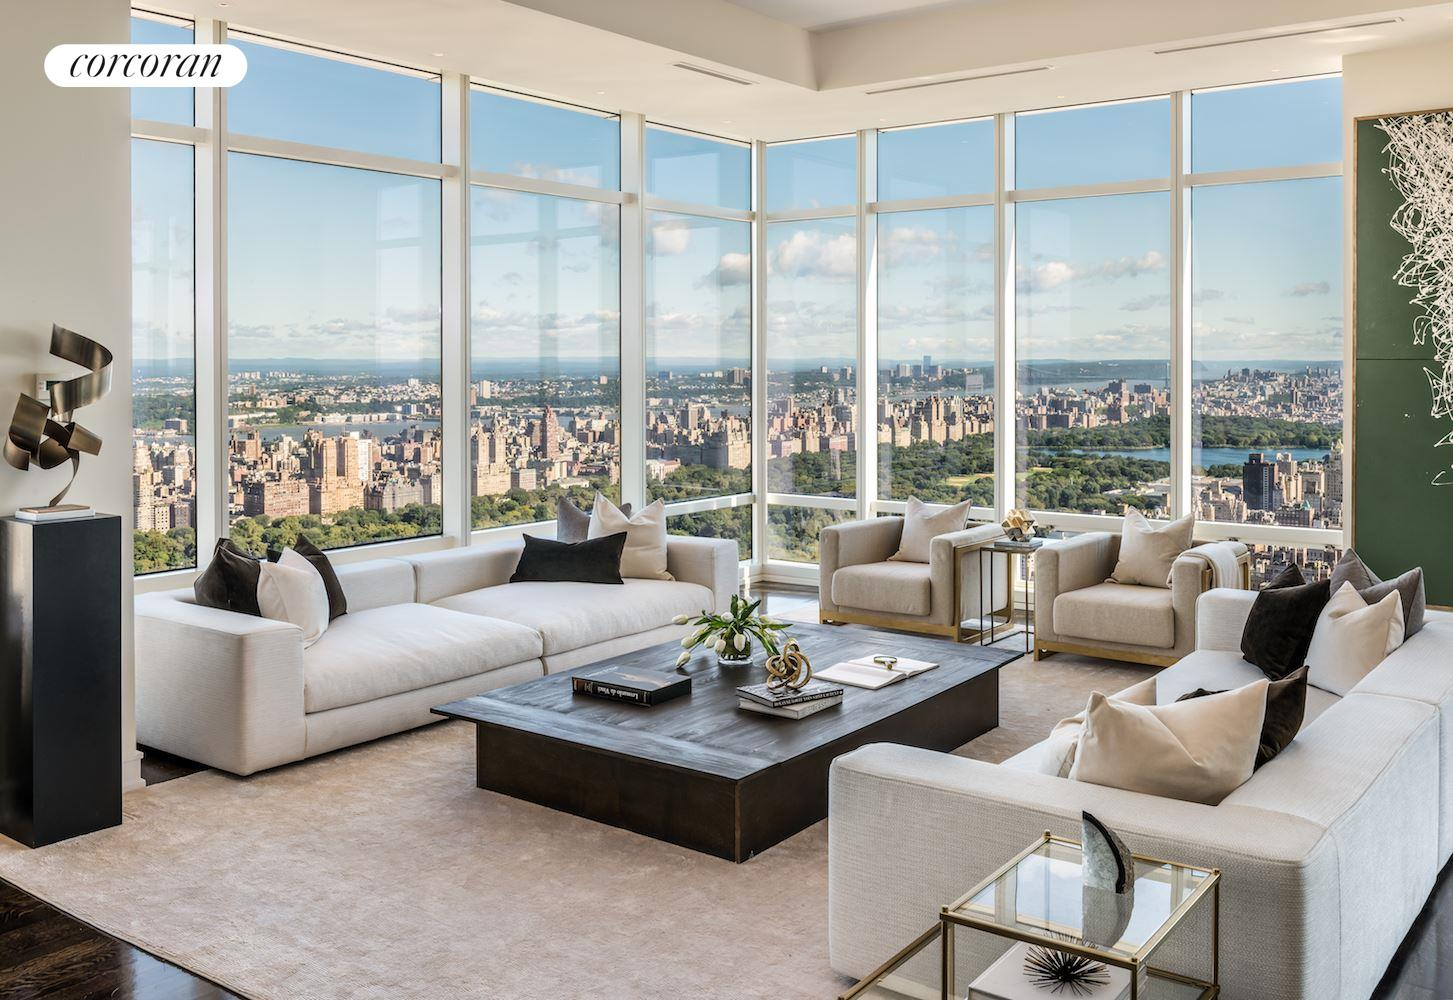 Corcoran 151 east 58th street apt ph53w upper east for Central park penthouses for sale